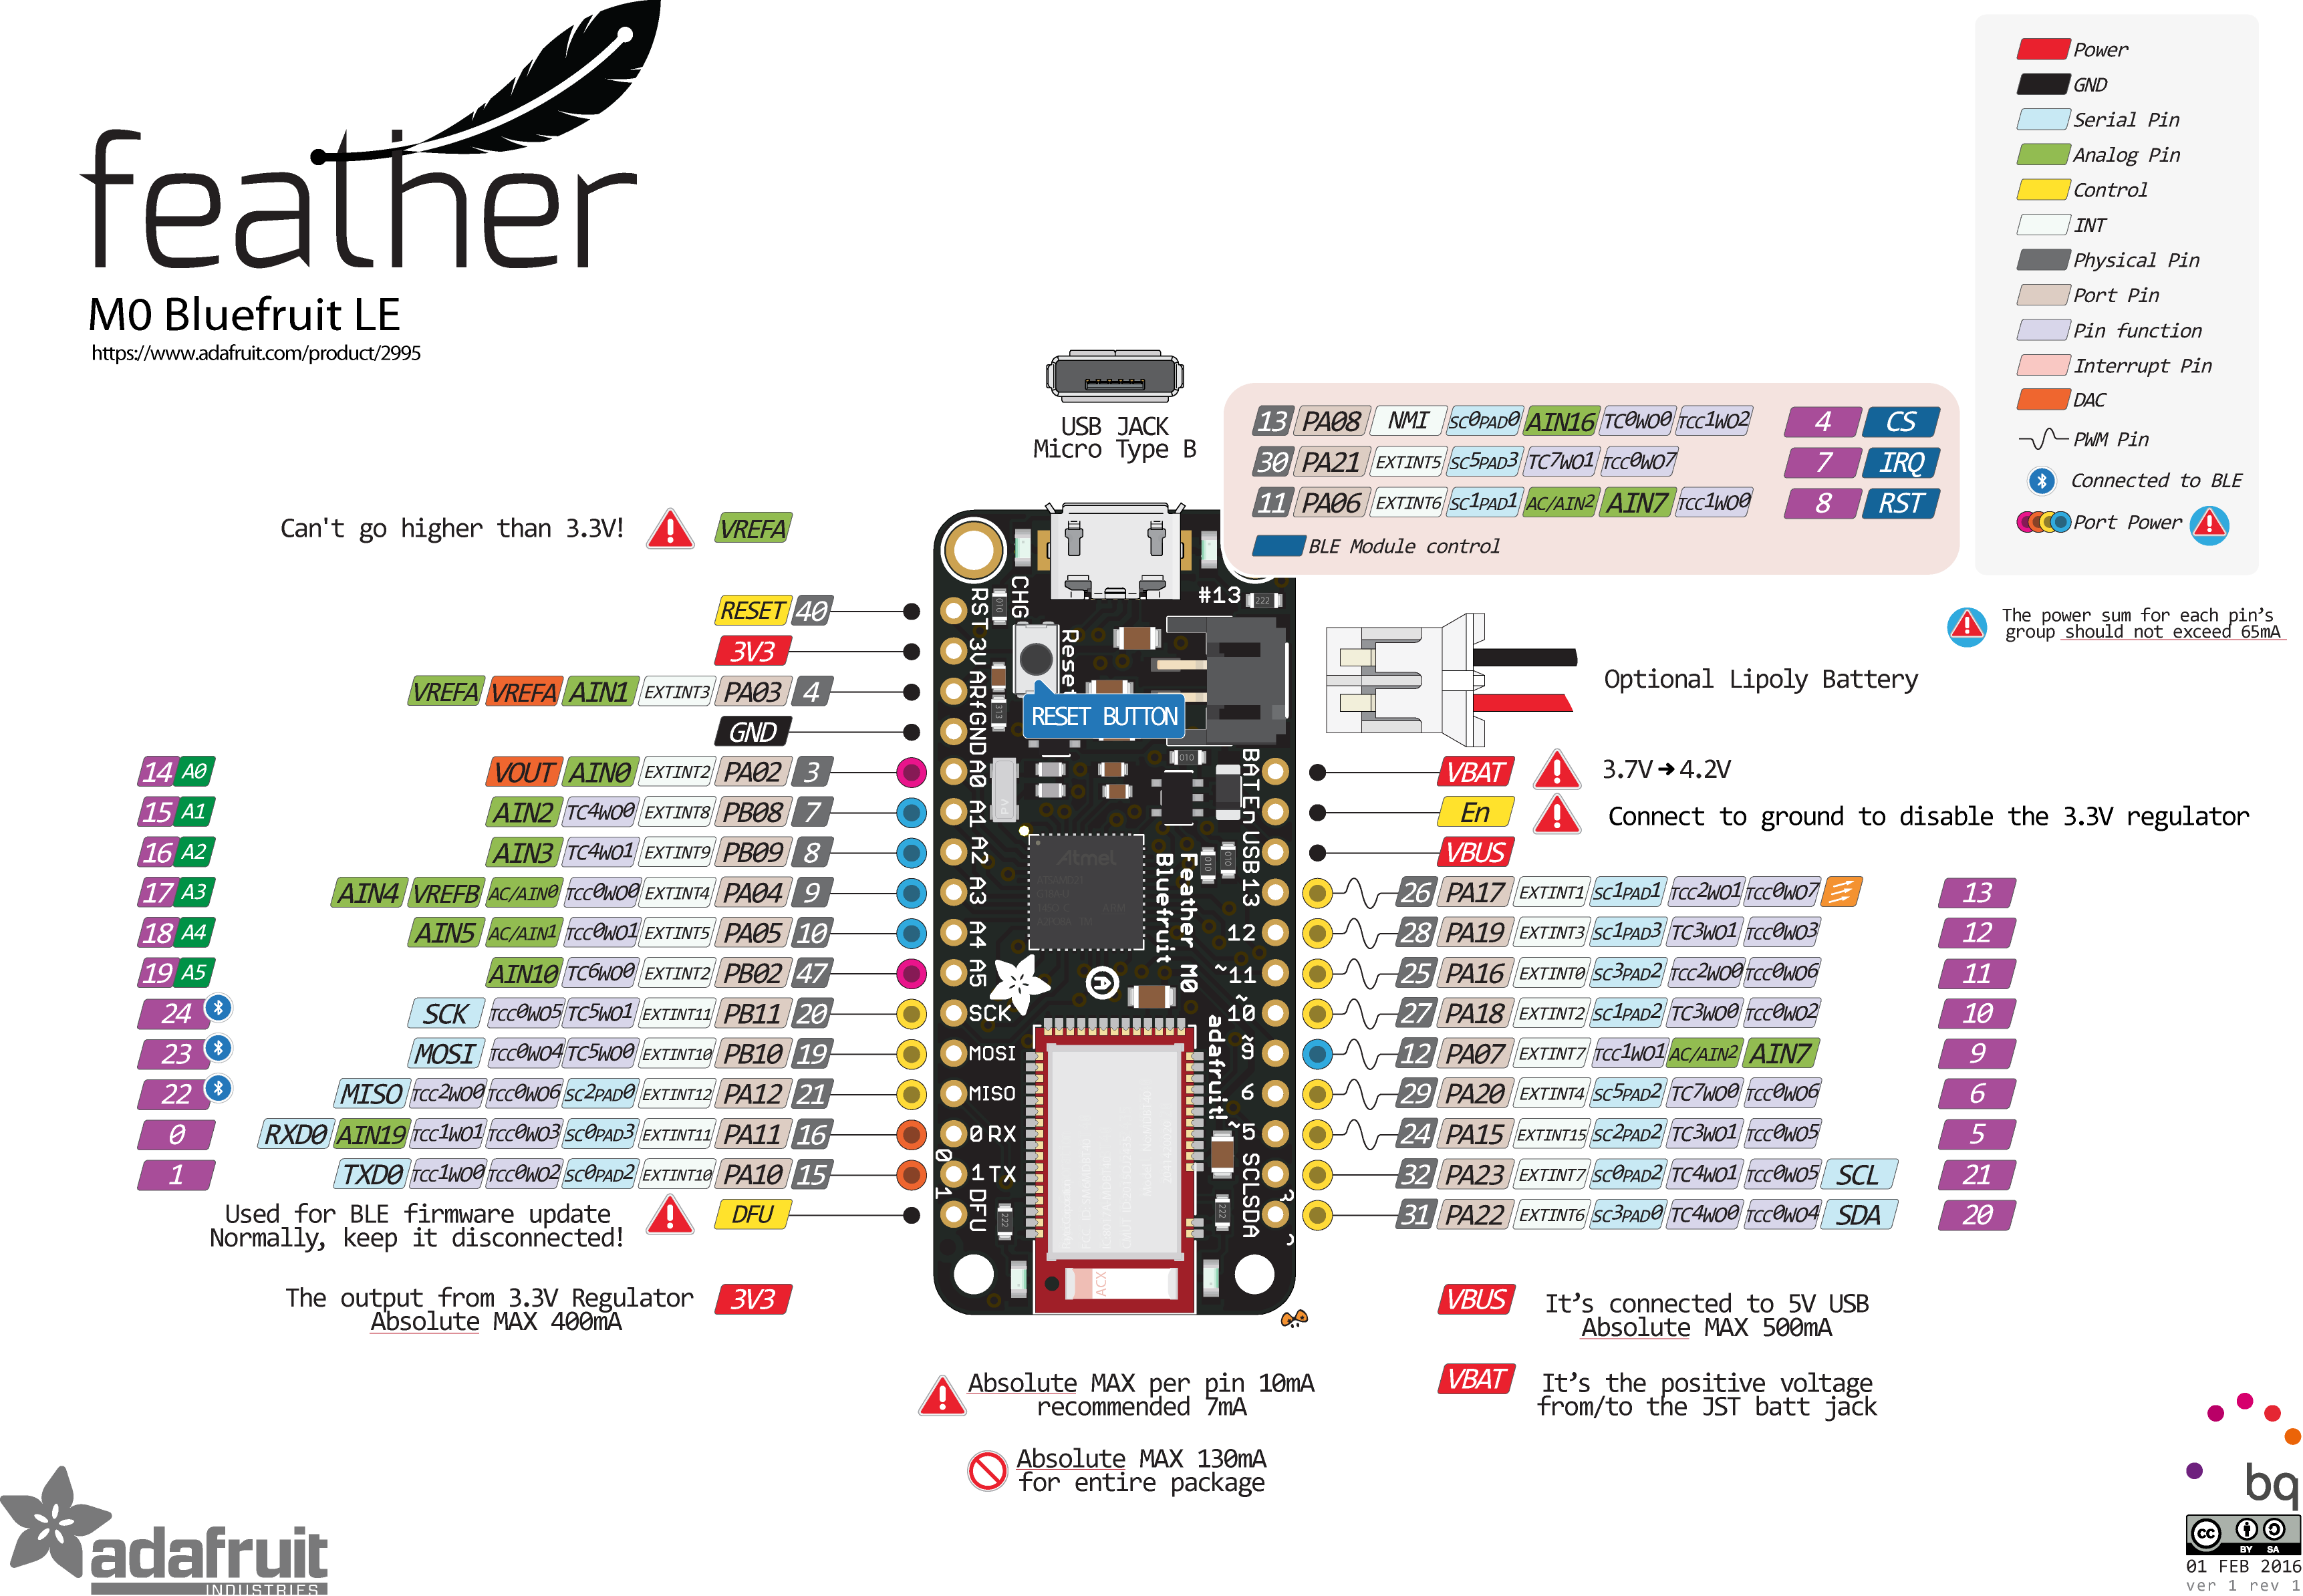 adafruit_products_2995_pinout_v1_0.png